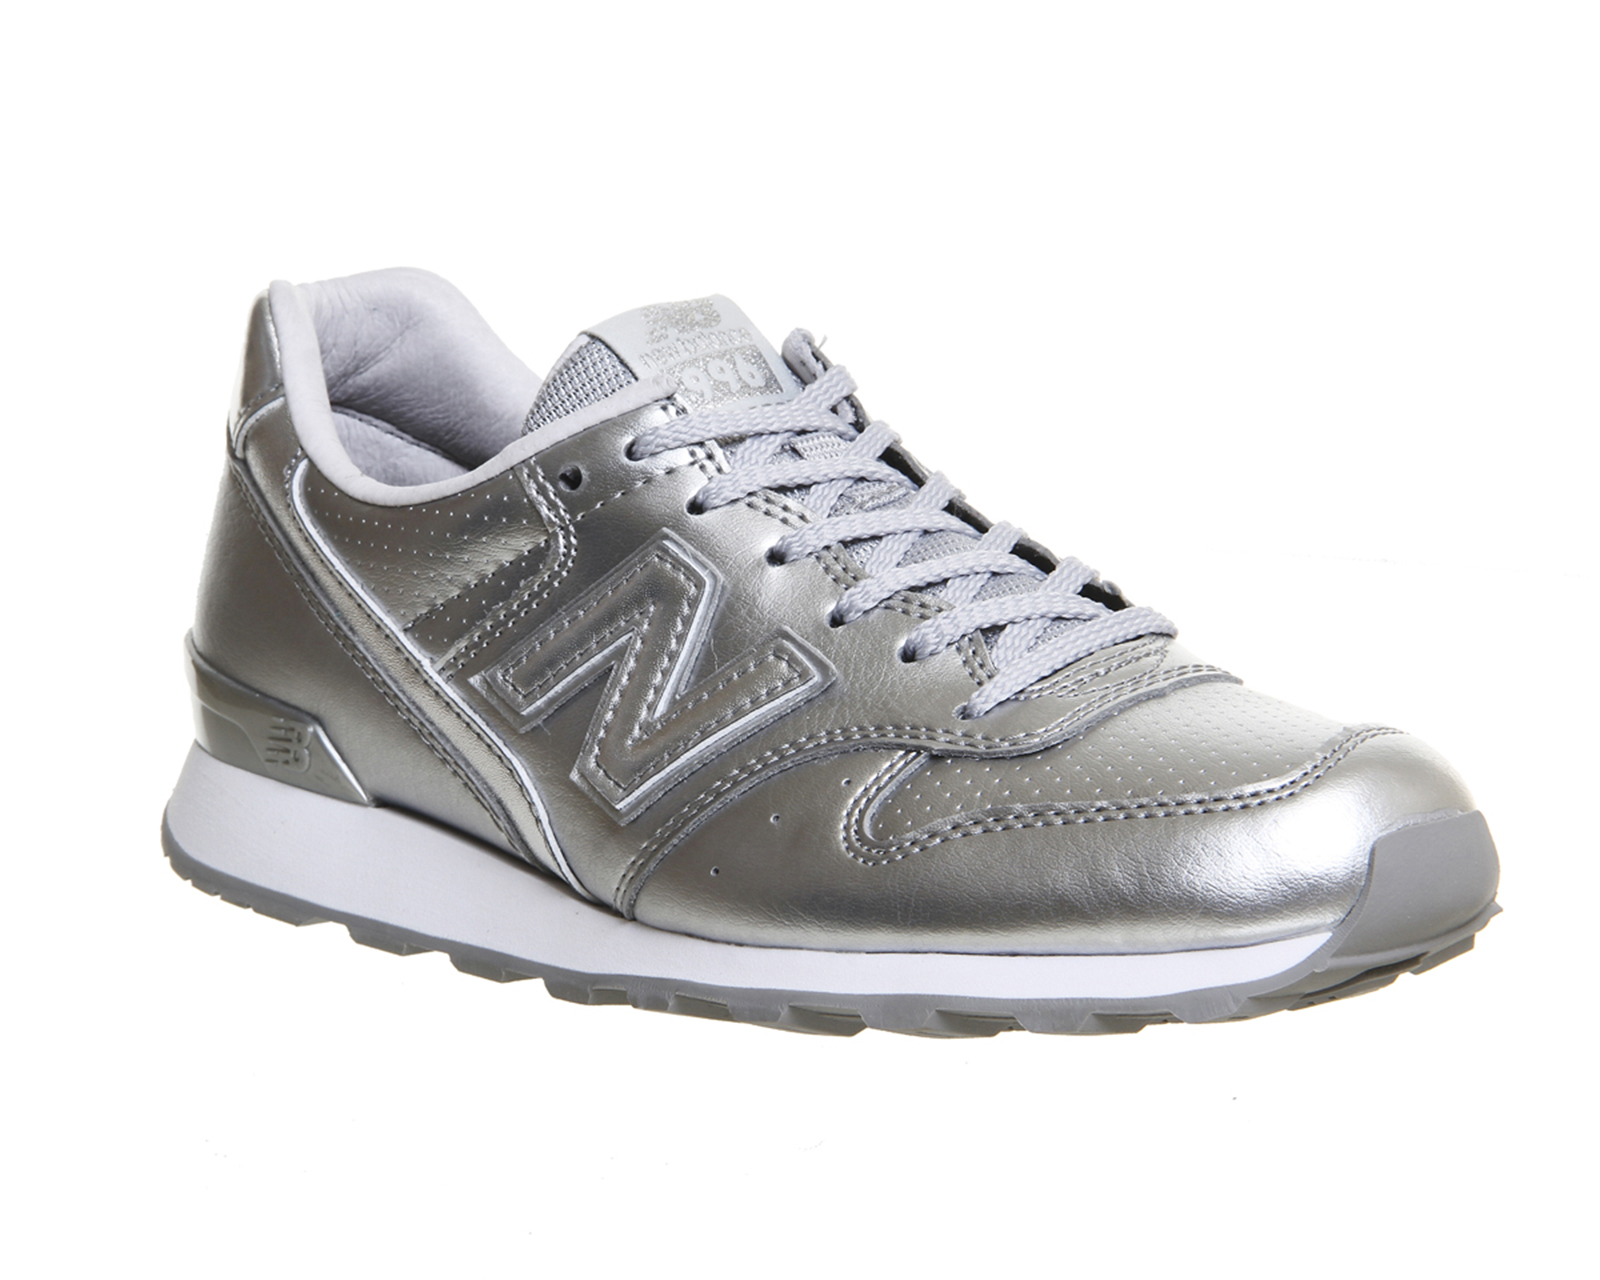 womens new balance 996 silver mono trainers shoes ebay. Black Bedroom Furniture Sets. Home Design Ideas